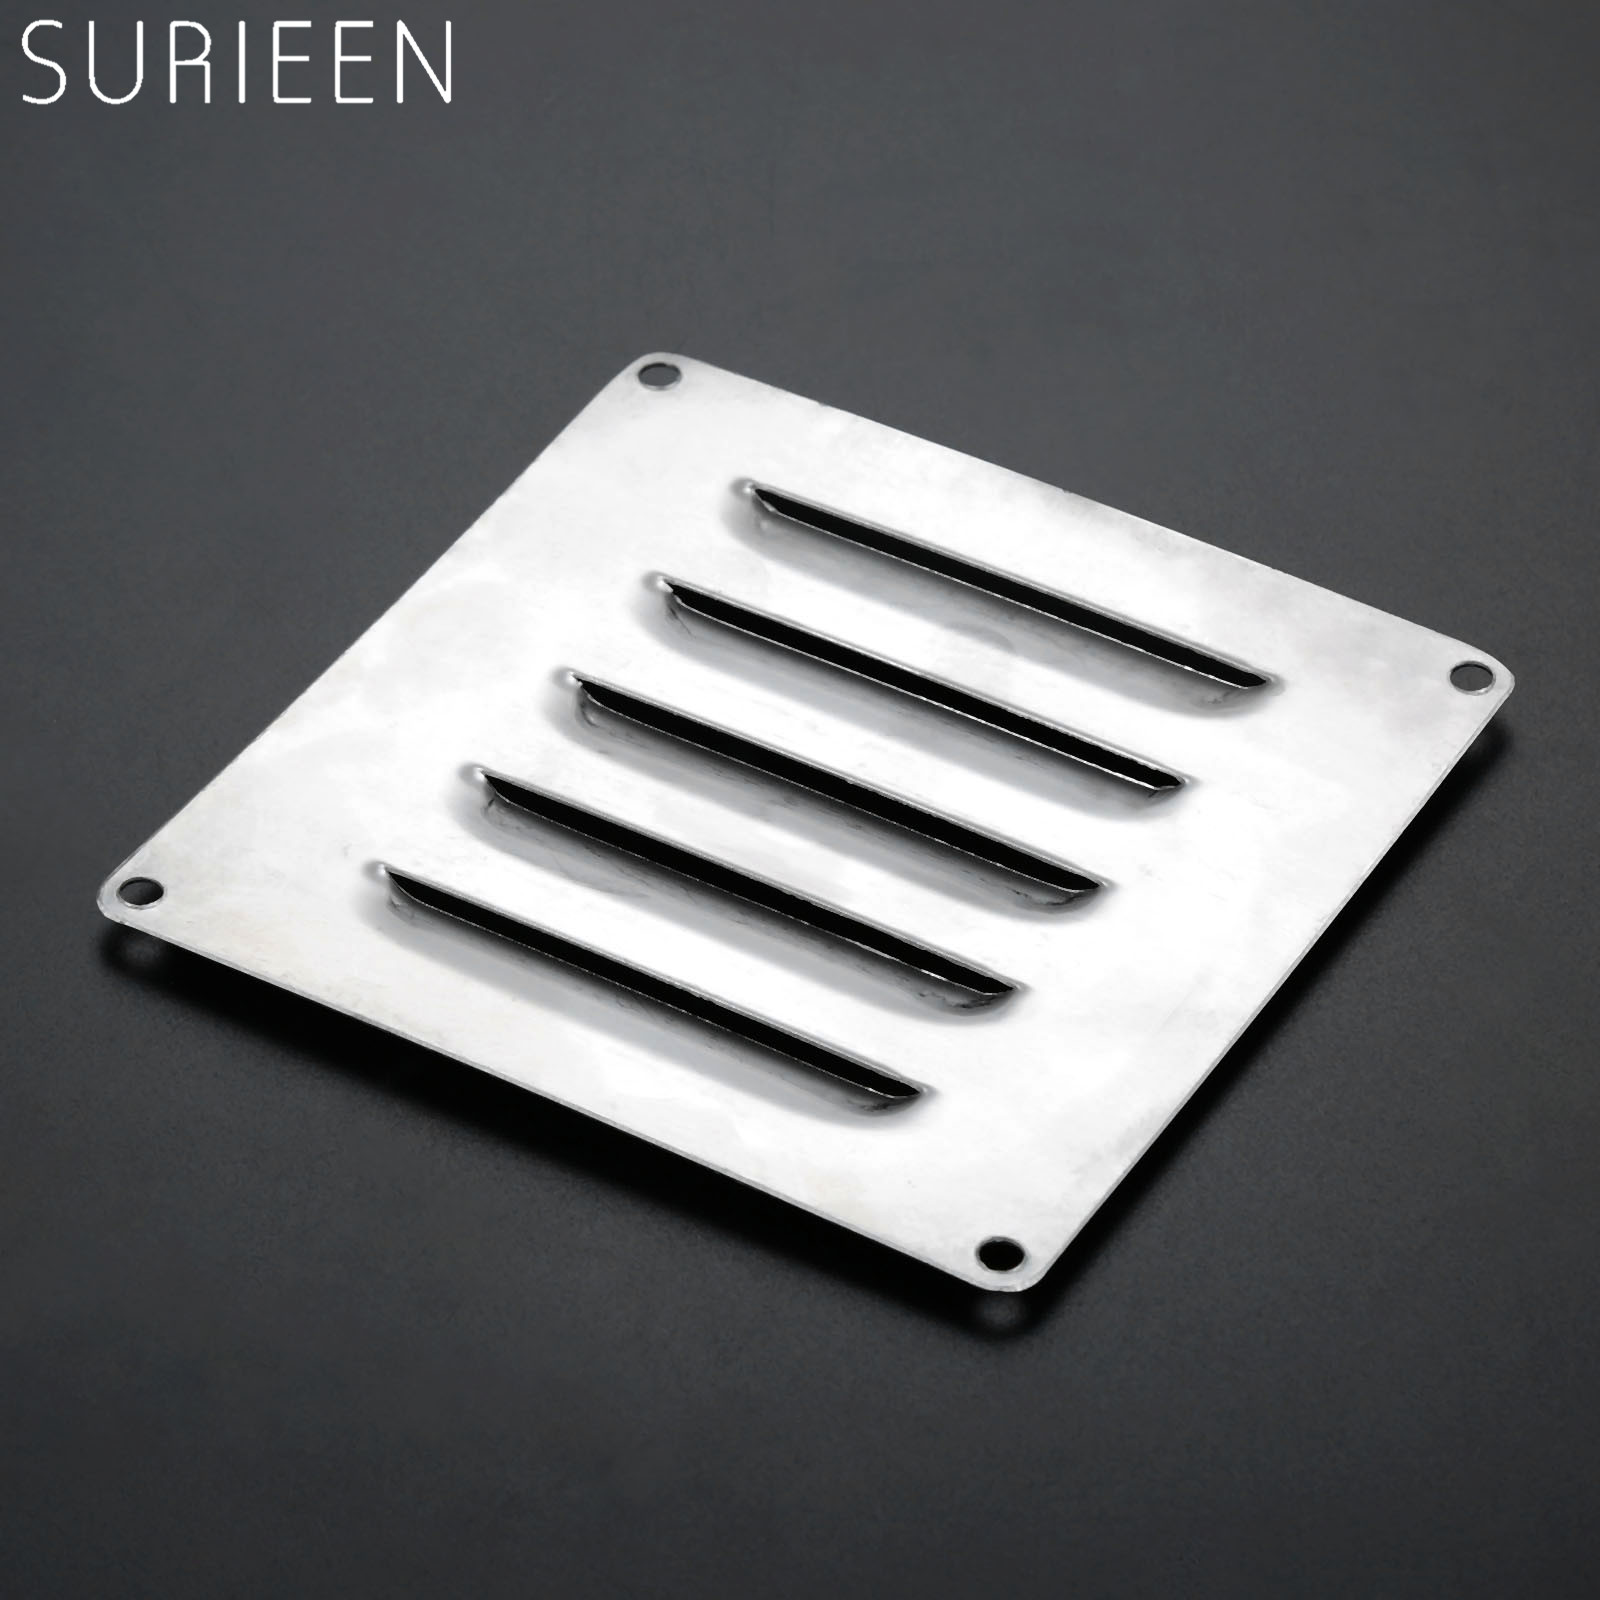 120mm*120mm Marine Square Air Vent Grille Metal Wall Ventilation Boats Stainless Steel Vertical Rectangular Louvered Vent Cover